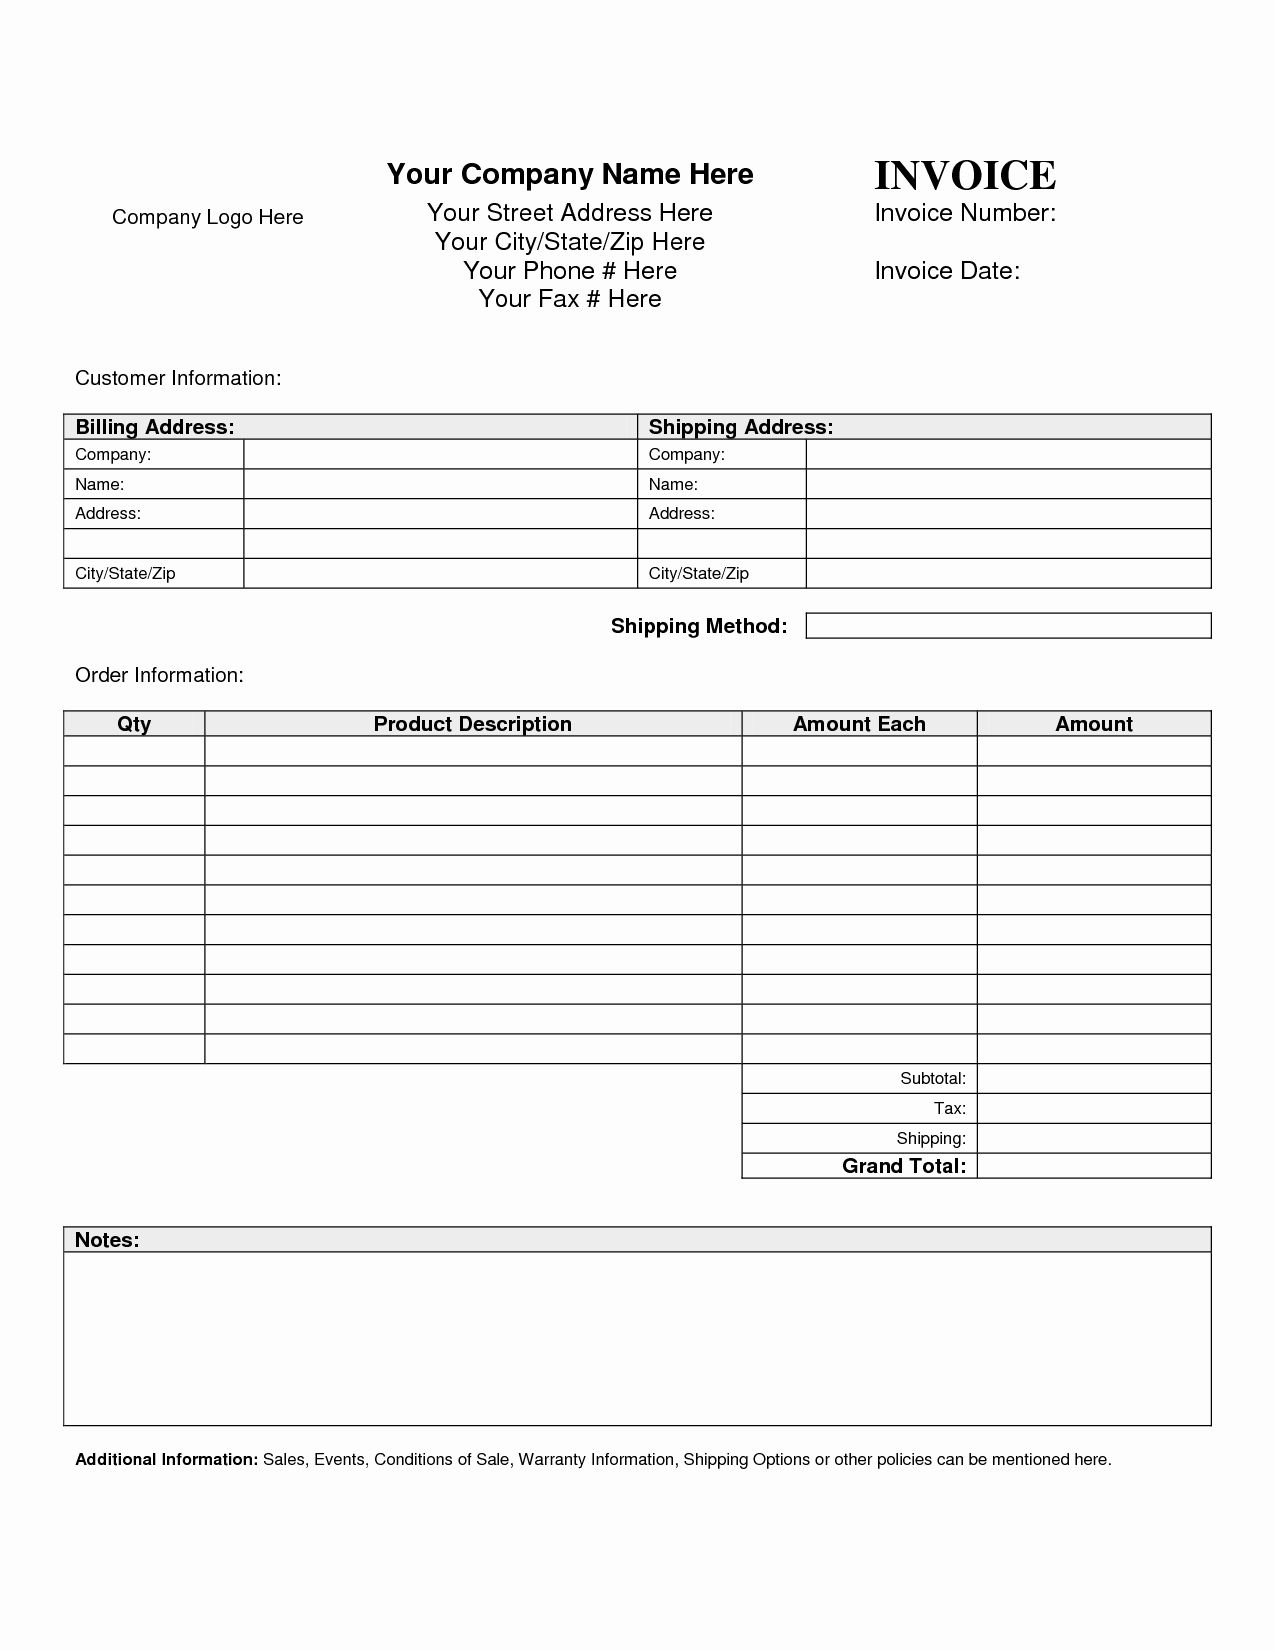 Billing Invoice Template Word Beautiful Free Downloads Invoice Forms Markmeckler Template Design Invoice Template Word Invoice Template Invoice Example